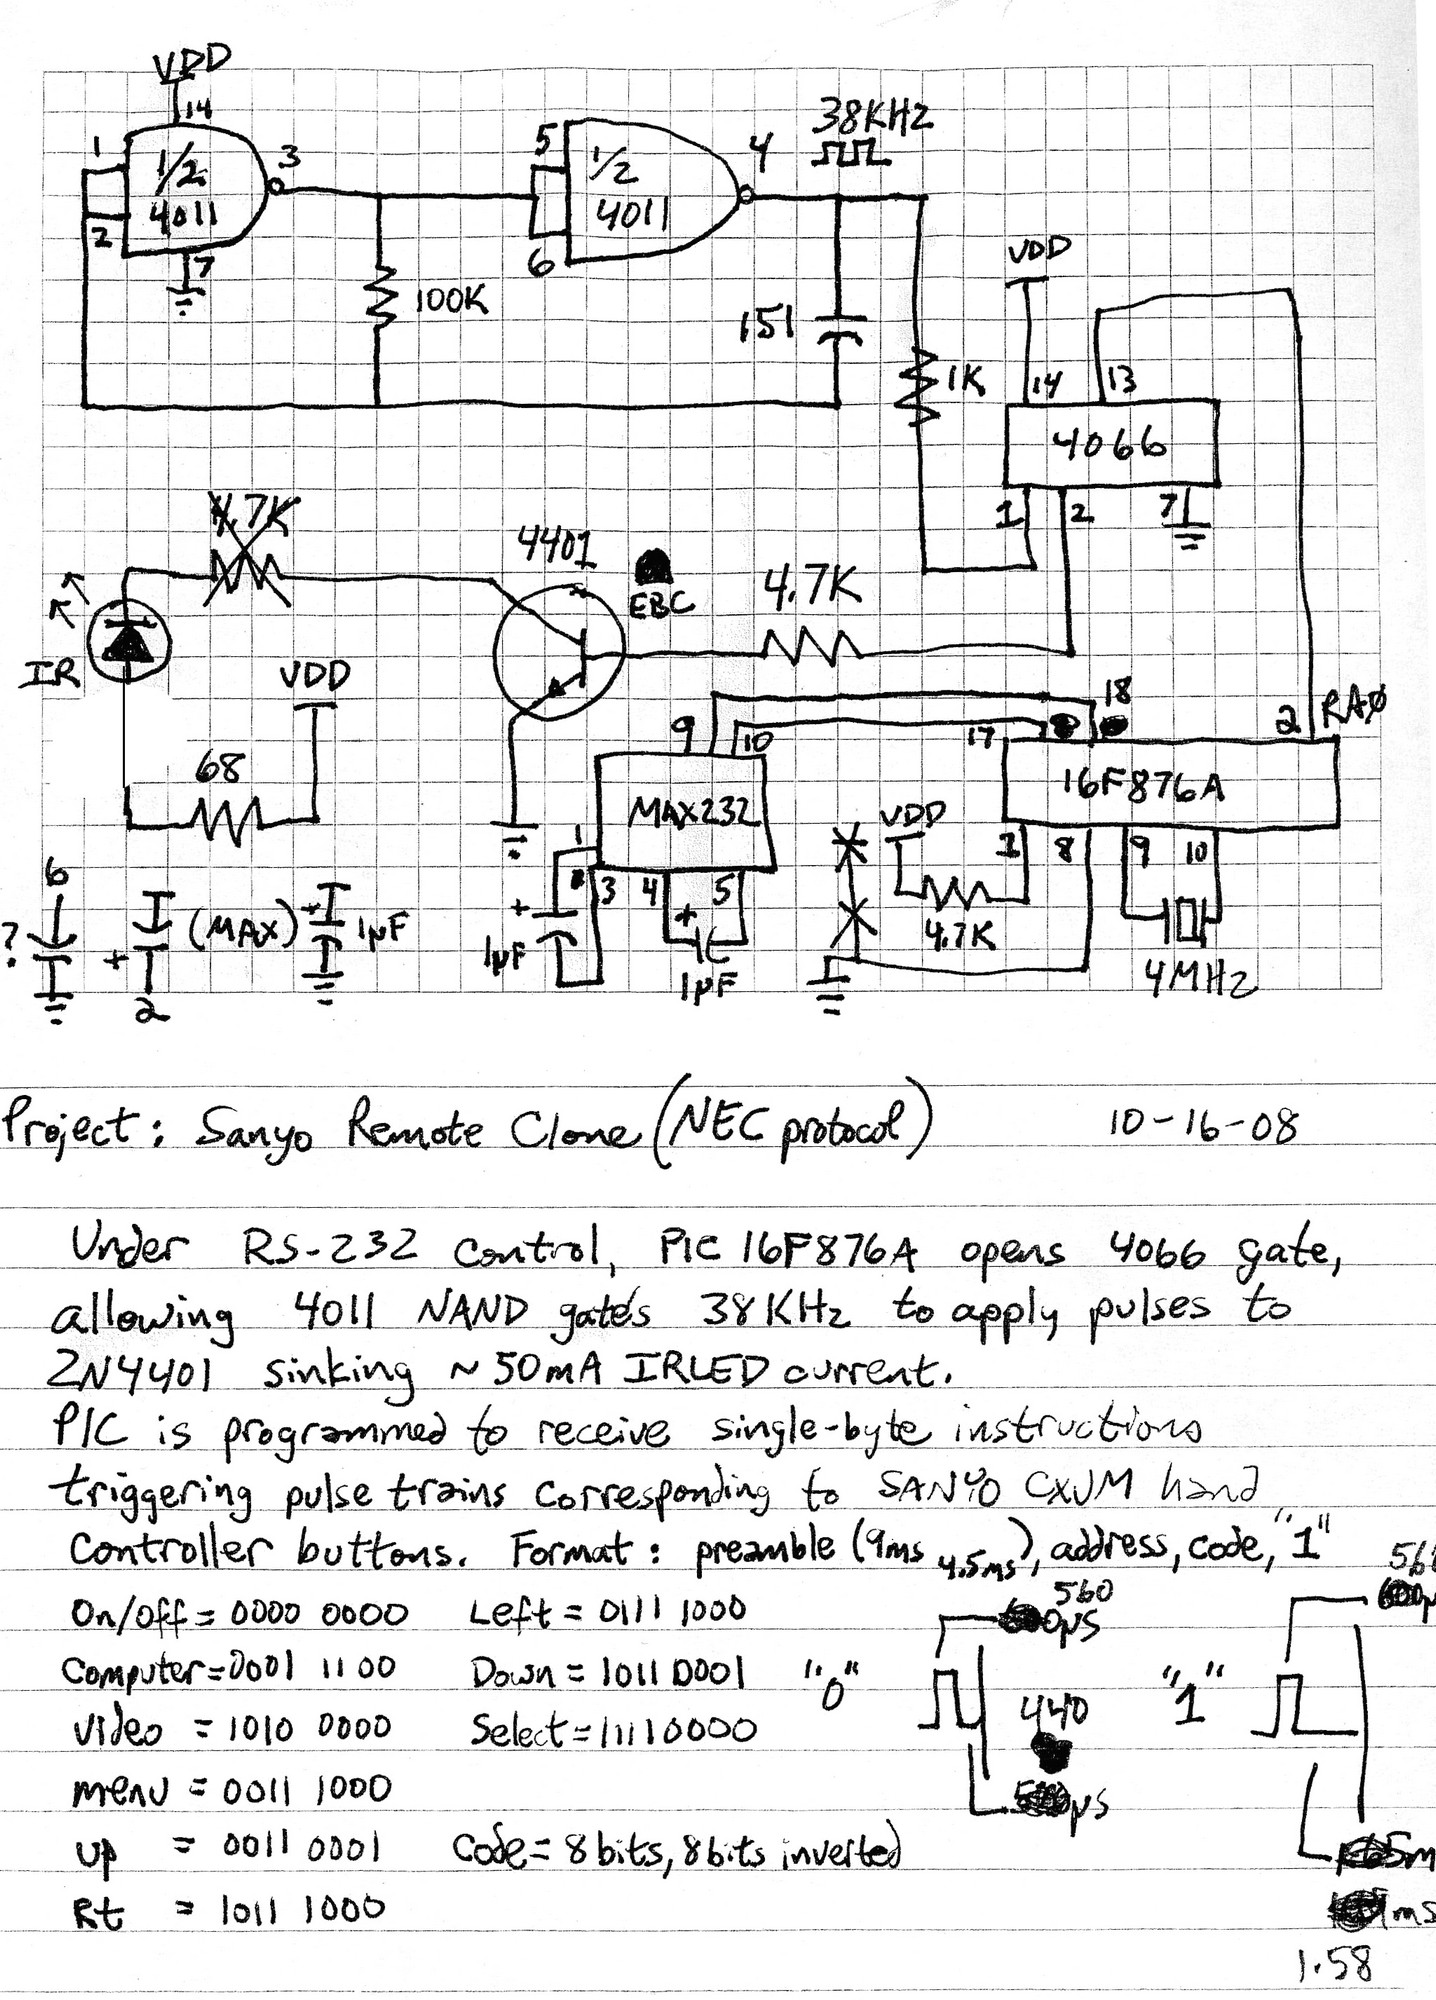 mach audio wiring diagram free wiring diagram images